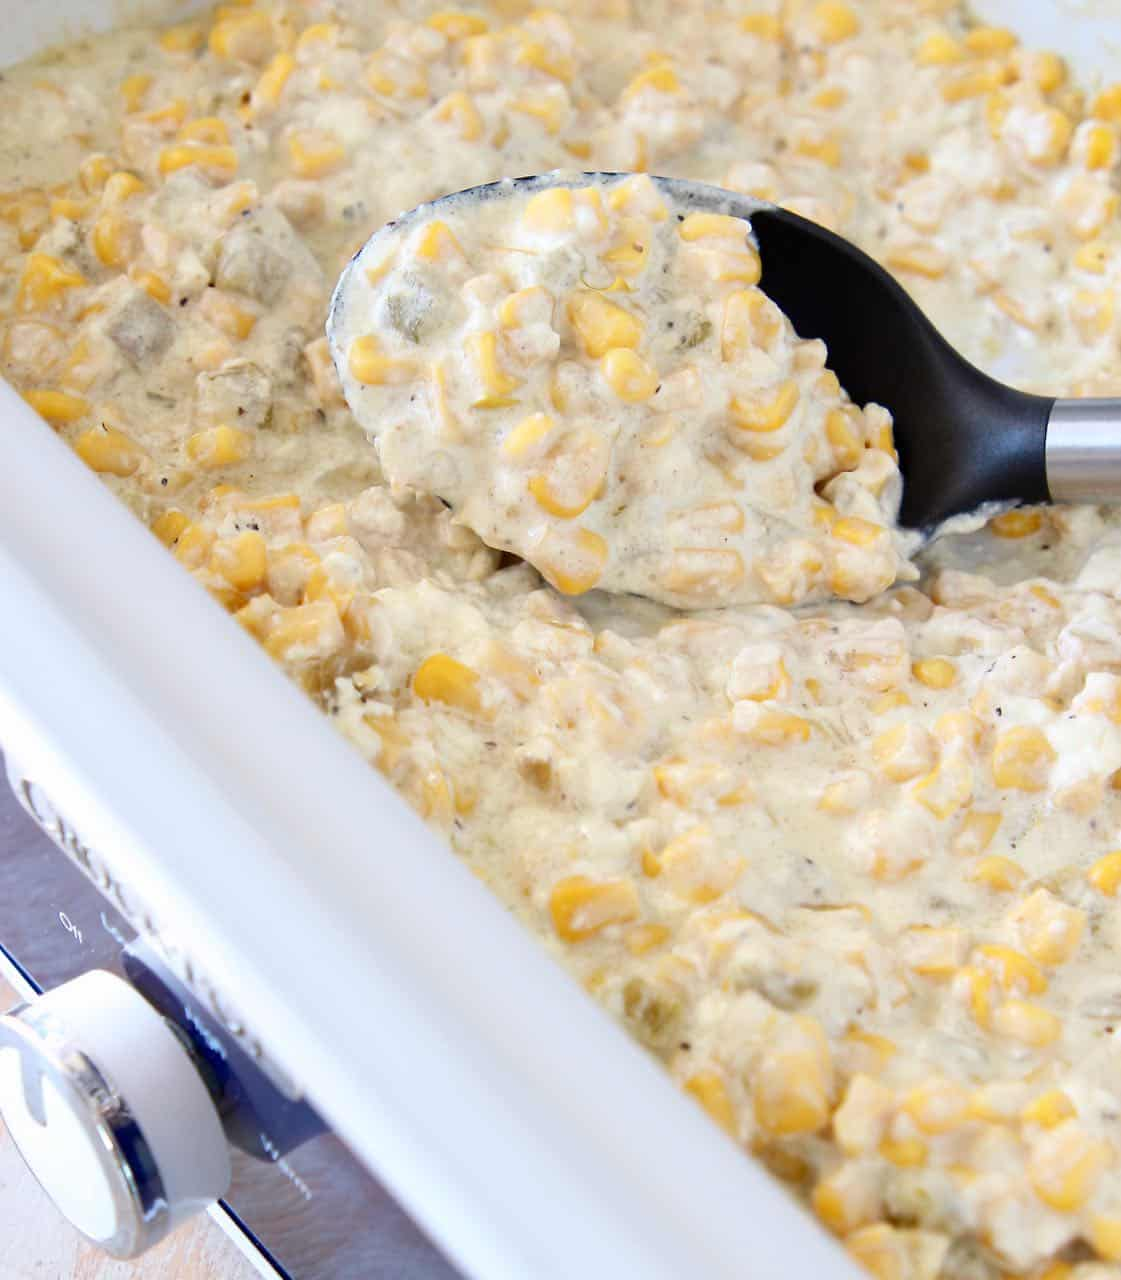 Creamed corn in slow cooker with serving spoon